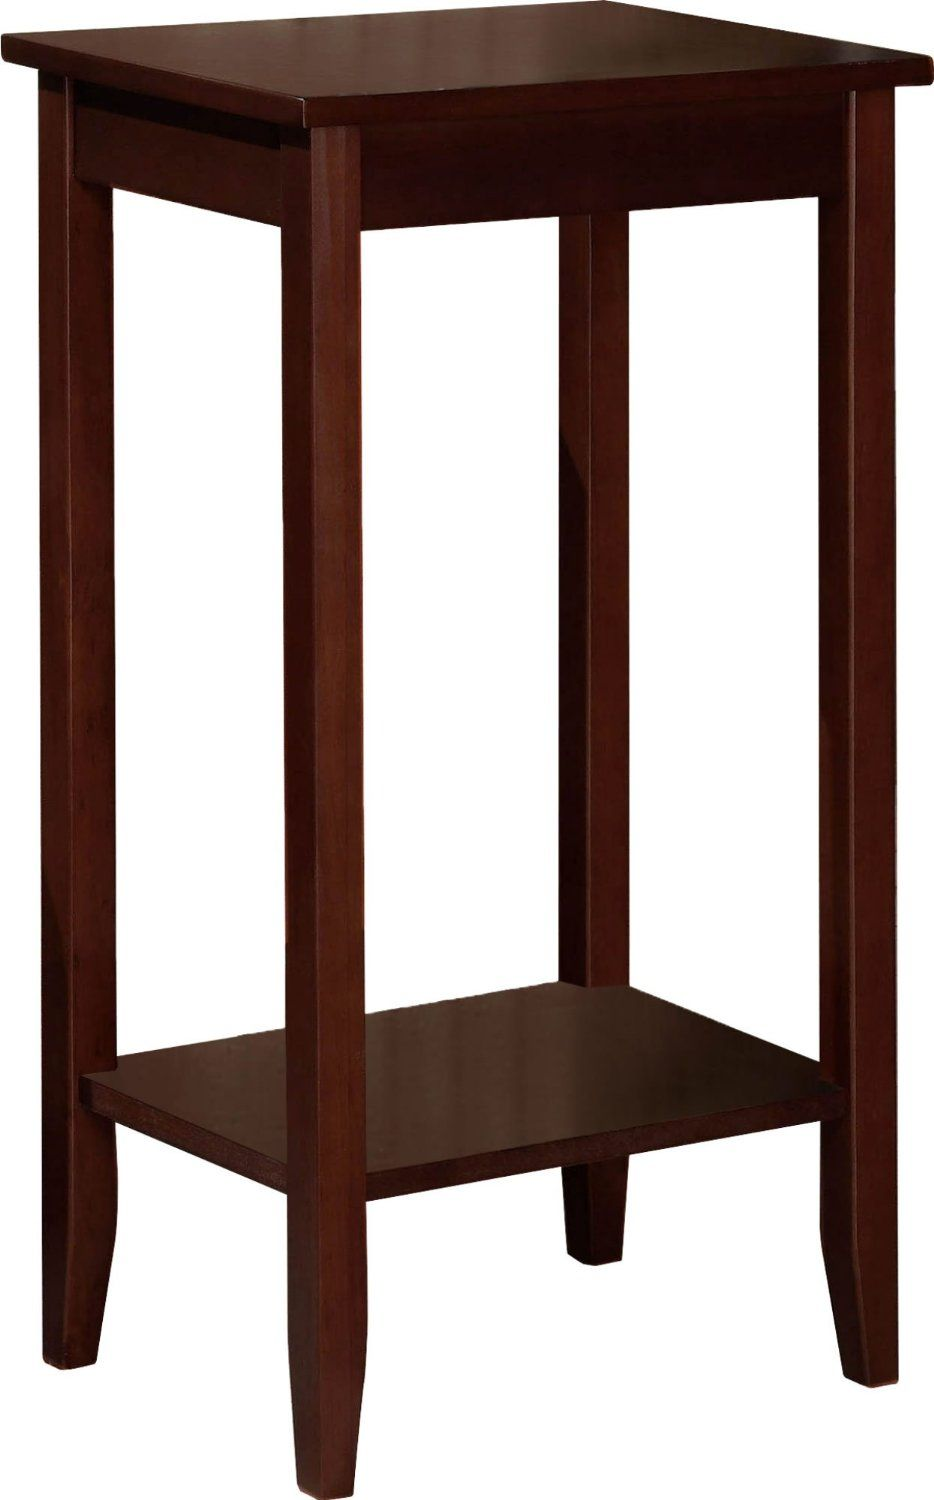 Dorel Home Products 5138096 End Table  Wood and Wood Veneer  12 x coffee  brown Tall  lean and lovely  DHP s Rosewood Tall End Table brings a unique. Amazon com   Dorel Home Products coffee brown Tall End Table